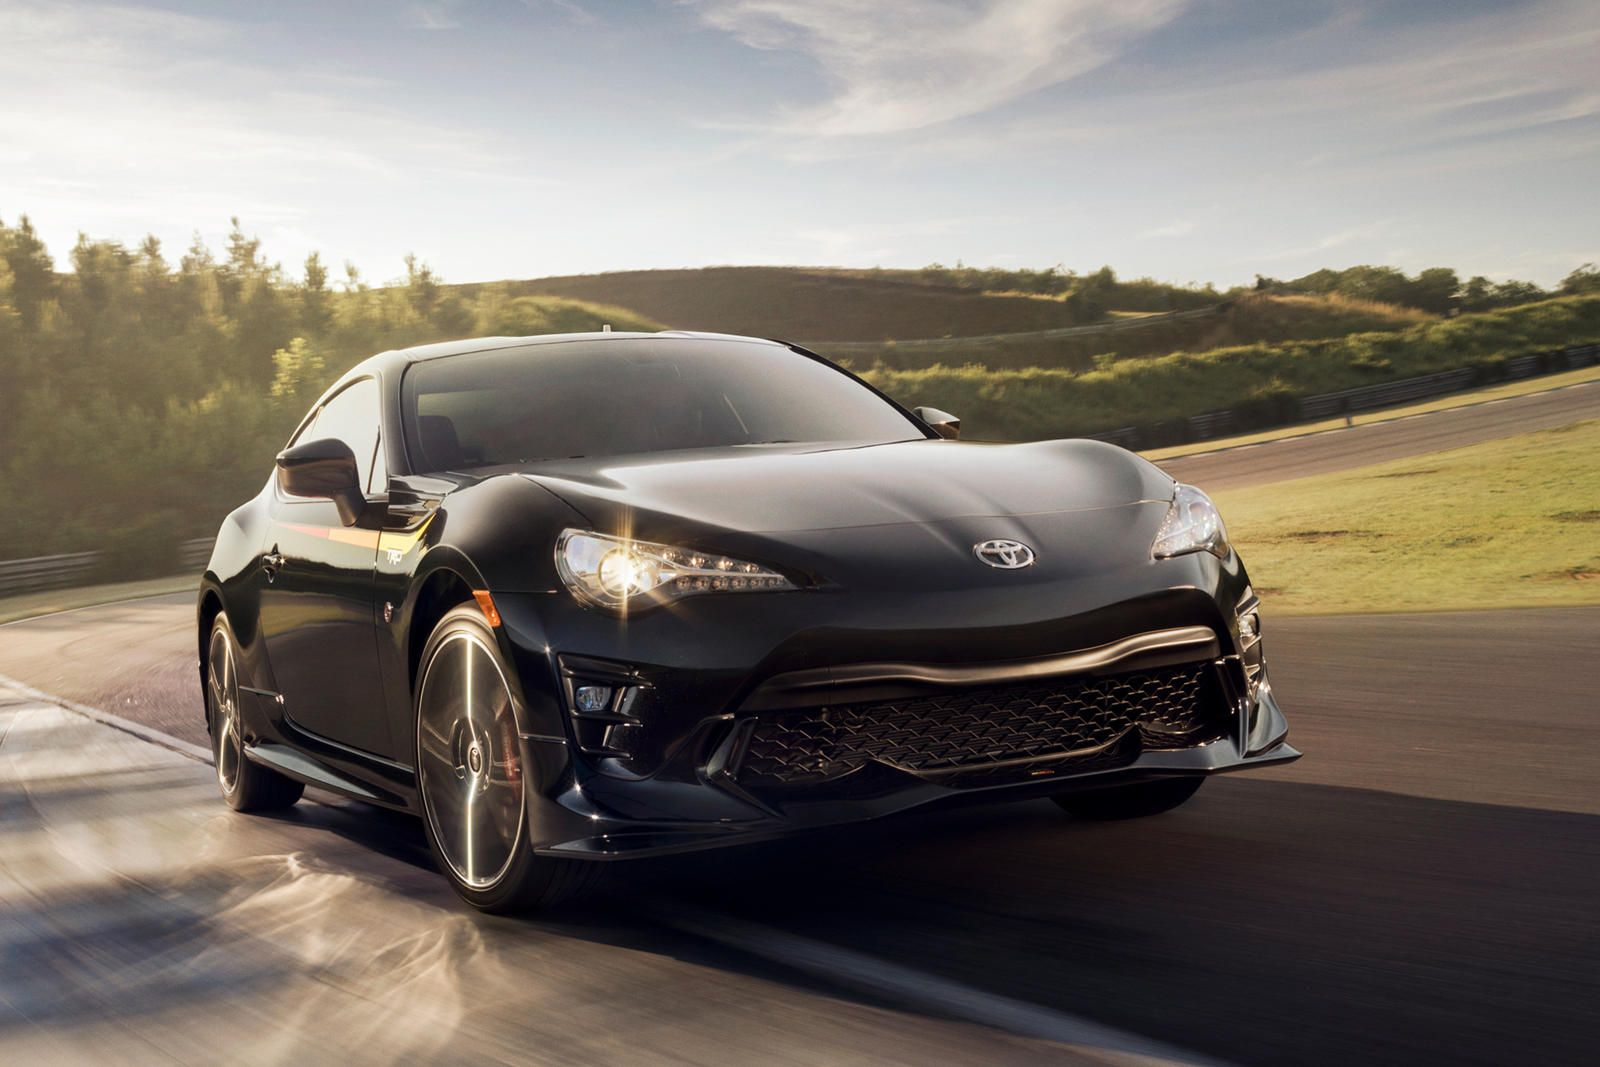 2020 Toyota 86 Test Drive Review Just An Engine Away From Perfection In 2020 Toyota 86 Toyota 2000gt Sports Cars